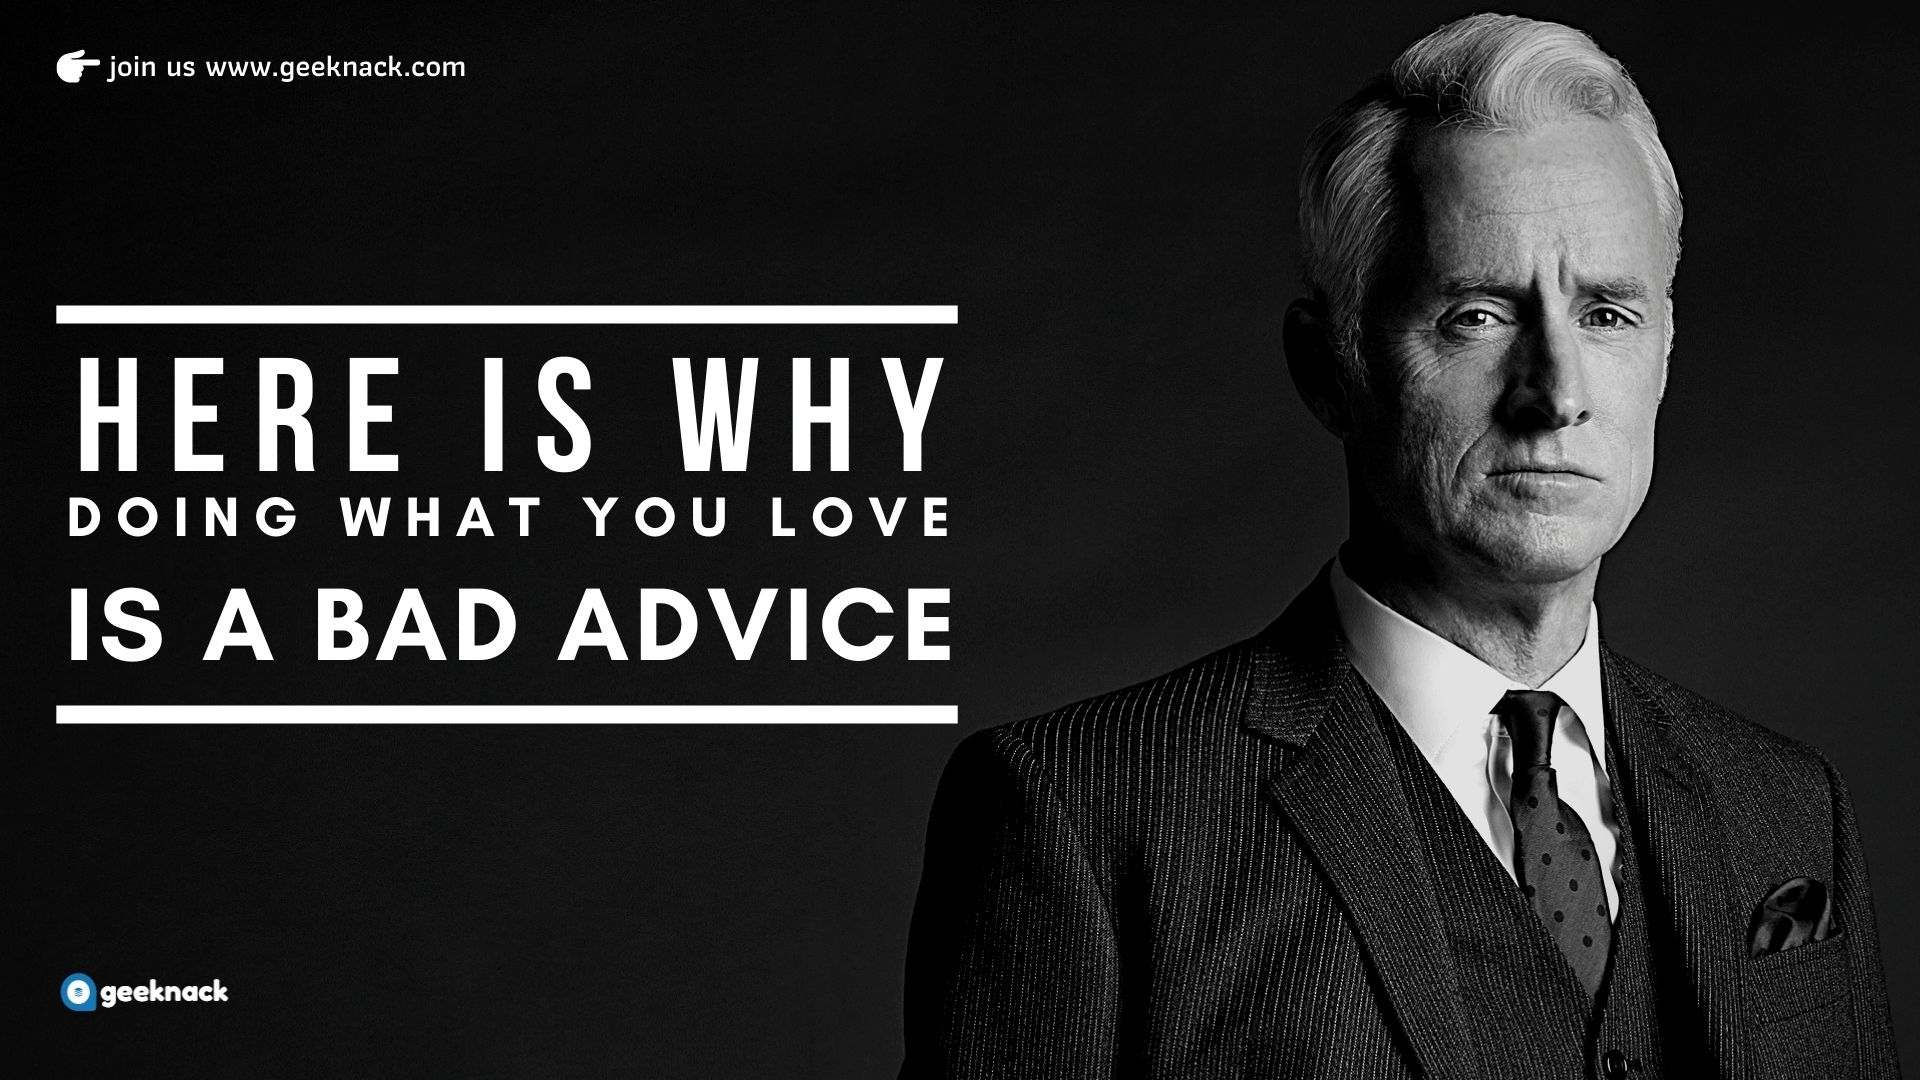 Here is why doing what you love is a bad advice cover